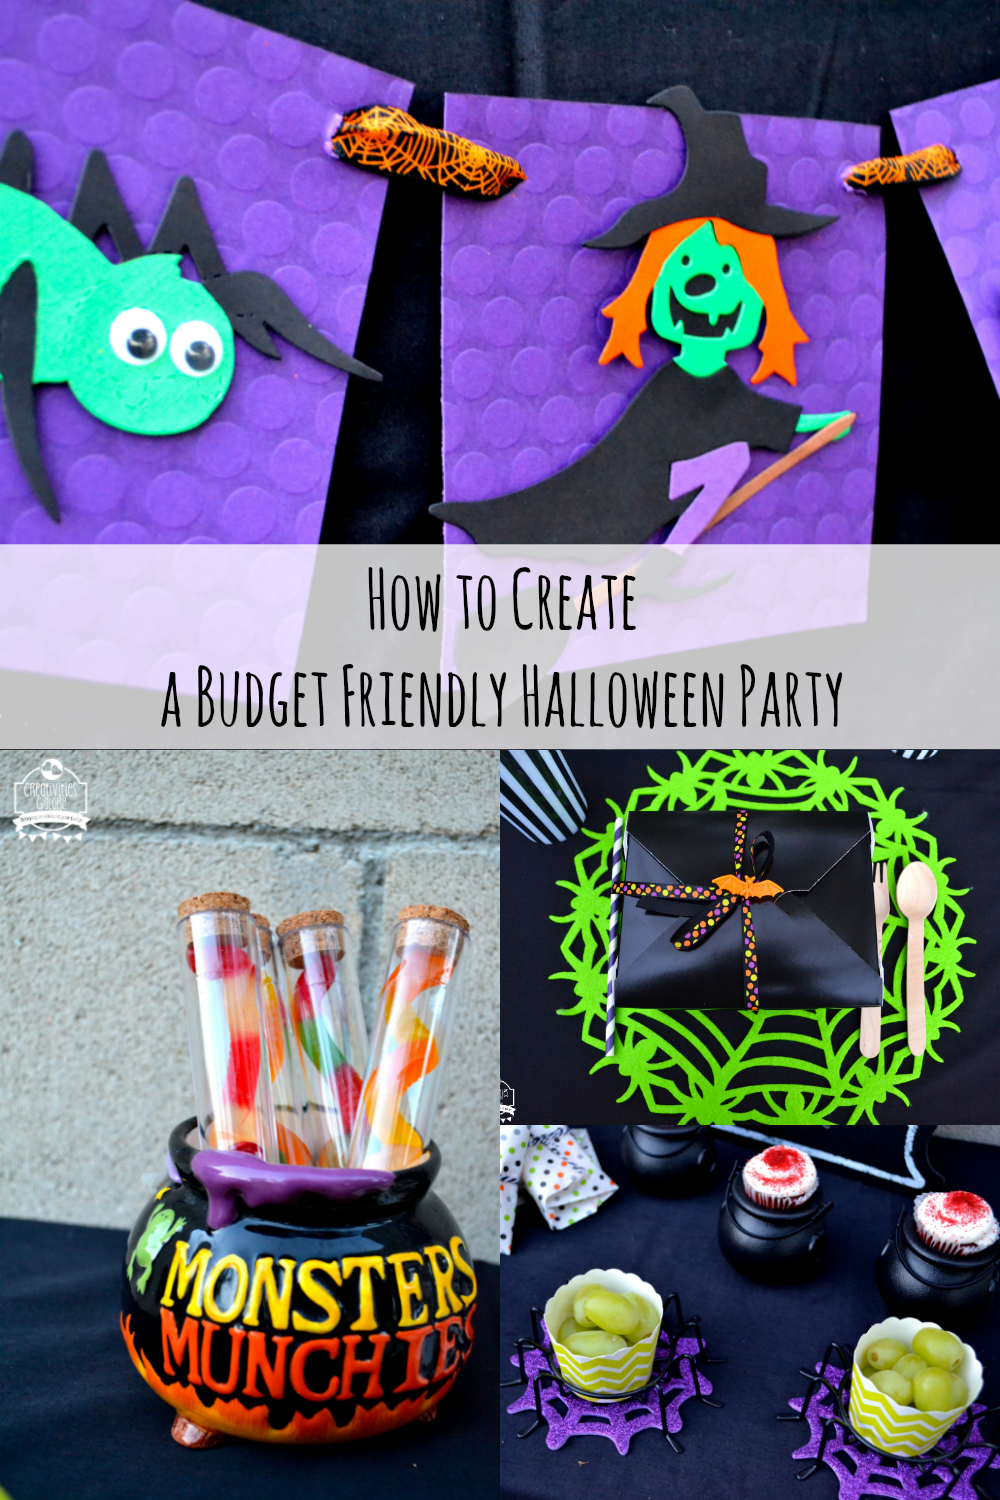 how-to-create-a-budget-friendly-halloween-party